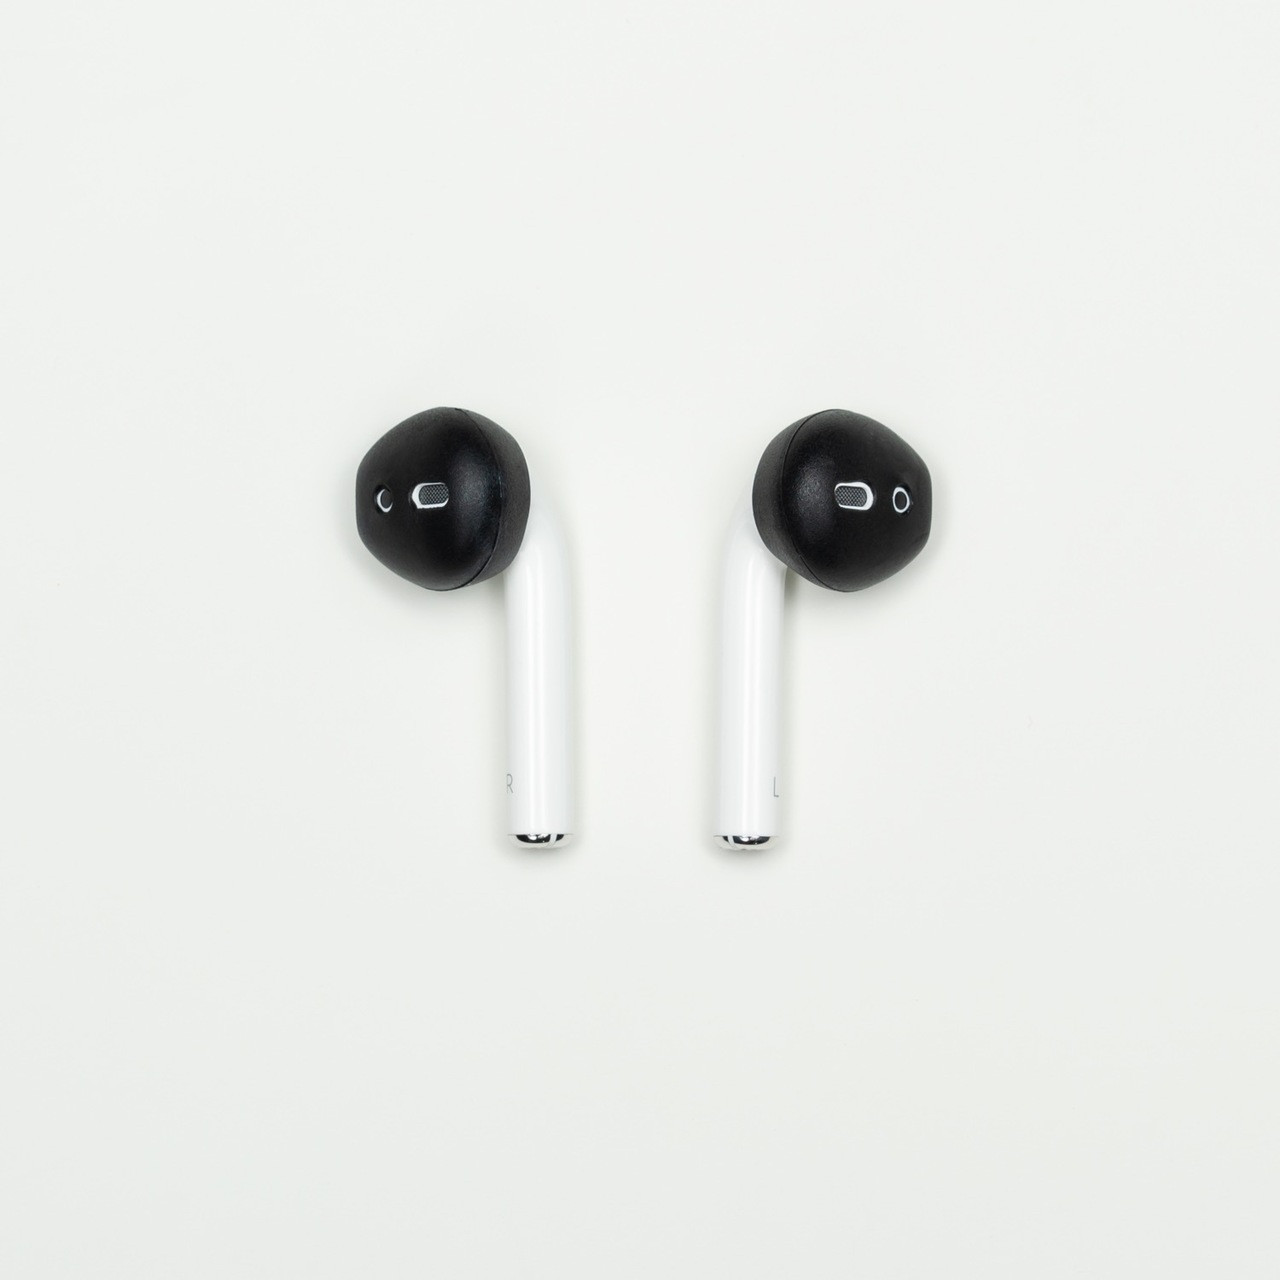 AirPods & Apple Earbuds Skins | SPACE (BLACK)   * AERZ is a simple comfortable AirPod and Apple Earbud 2.0 solution that improves the sound quality and comfort of your Apple AirPods and Apple Earbud 2.0     * Soft high quality silicone cover skins improve the comfort of Apple AirPods and Apple Earbuds 2.0 allowing you to wear your AirPods or Earbuds for hours on end without discomfort     * AERZ dramatically improves the audio quality of Apple AirPods and Apple Earbuds 2.0 by air sealing AirPods and Earbuds to prevent the escape of sound waves; thereby dramatically improving audio quality * Ultra-thin but Durable: AERZ Don't make your AirPods or earbuds too big for your ear canals.  It's the soft silicone surface that seals the audio quality in and makes your AirPods and Earbuds ultra comfortable